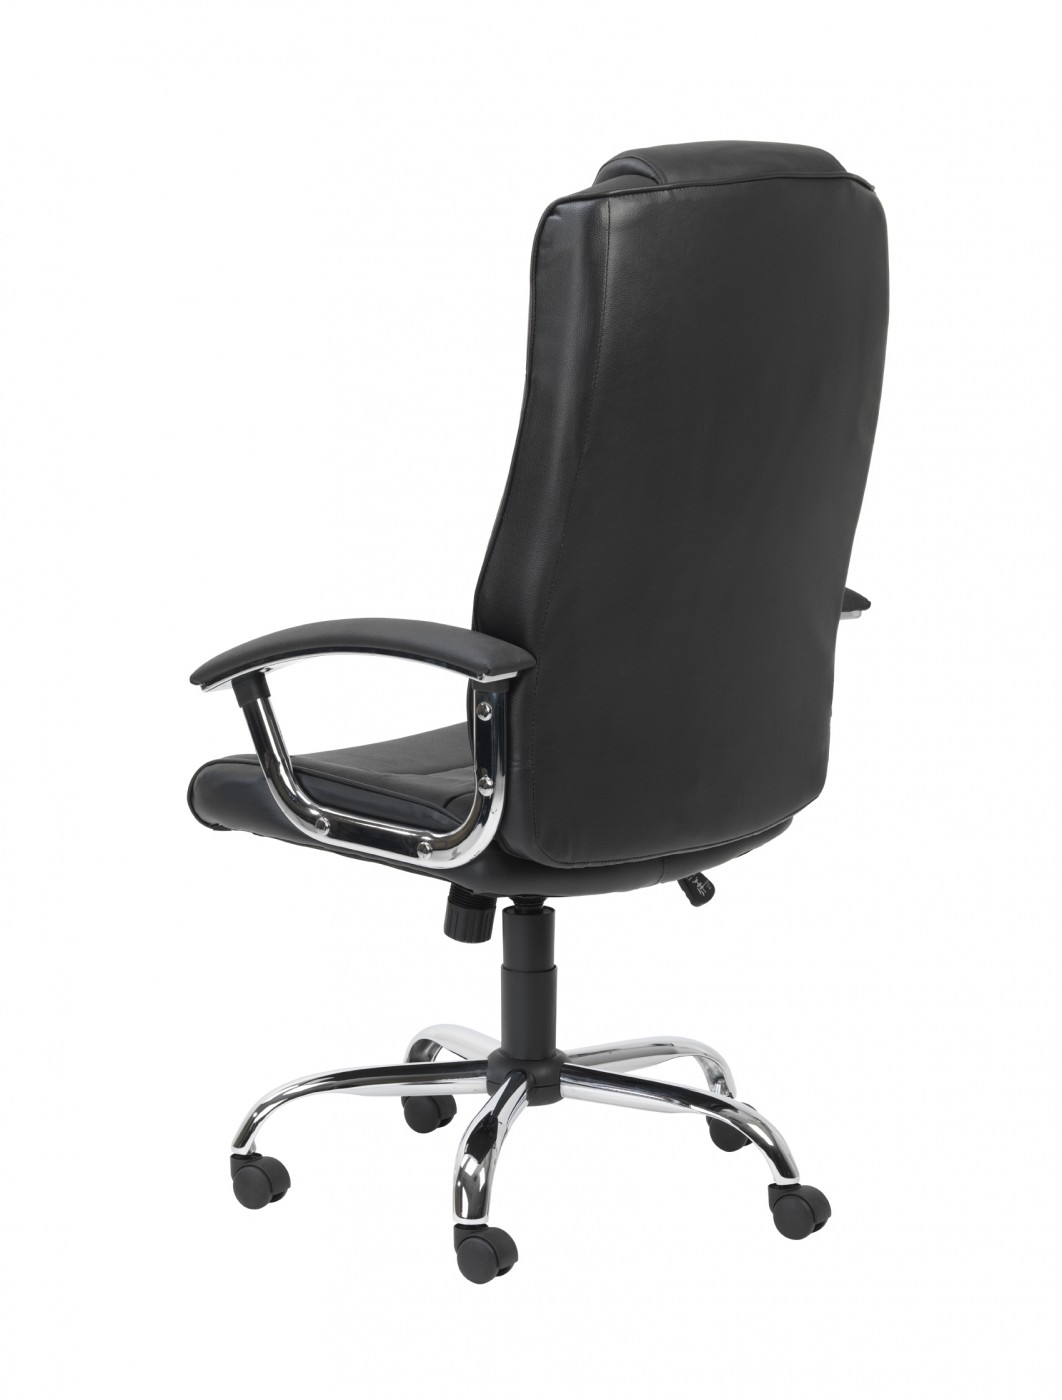 Executive Chair AOC4201A-L | 121 Office Furniture Black Office Chair Back View